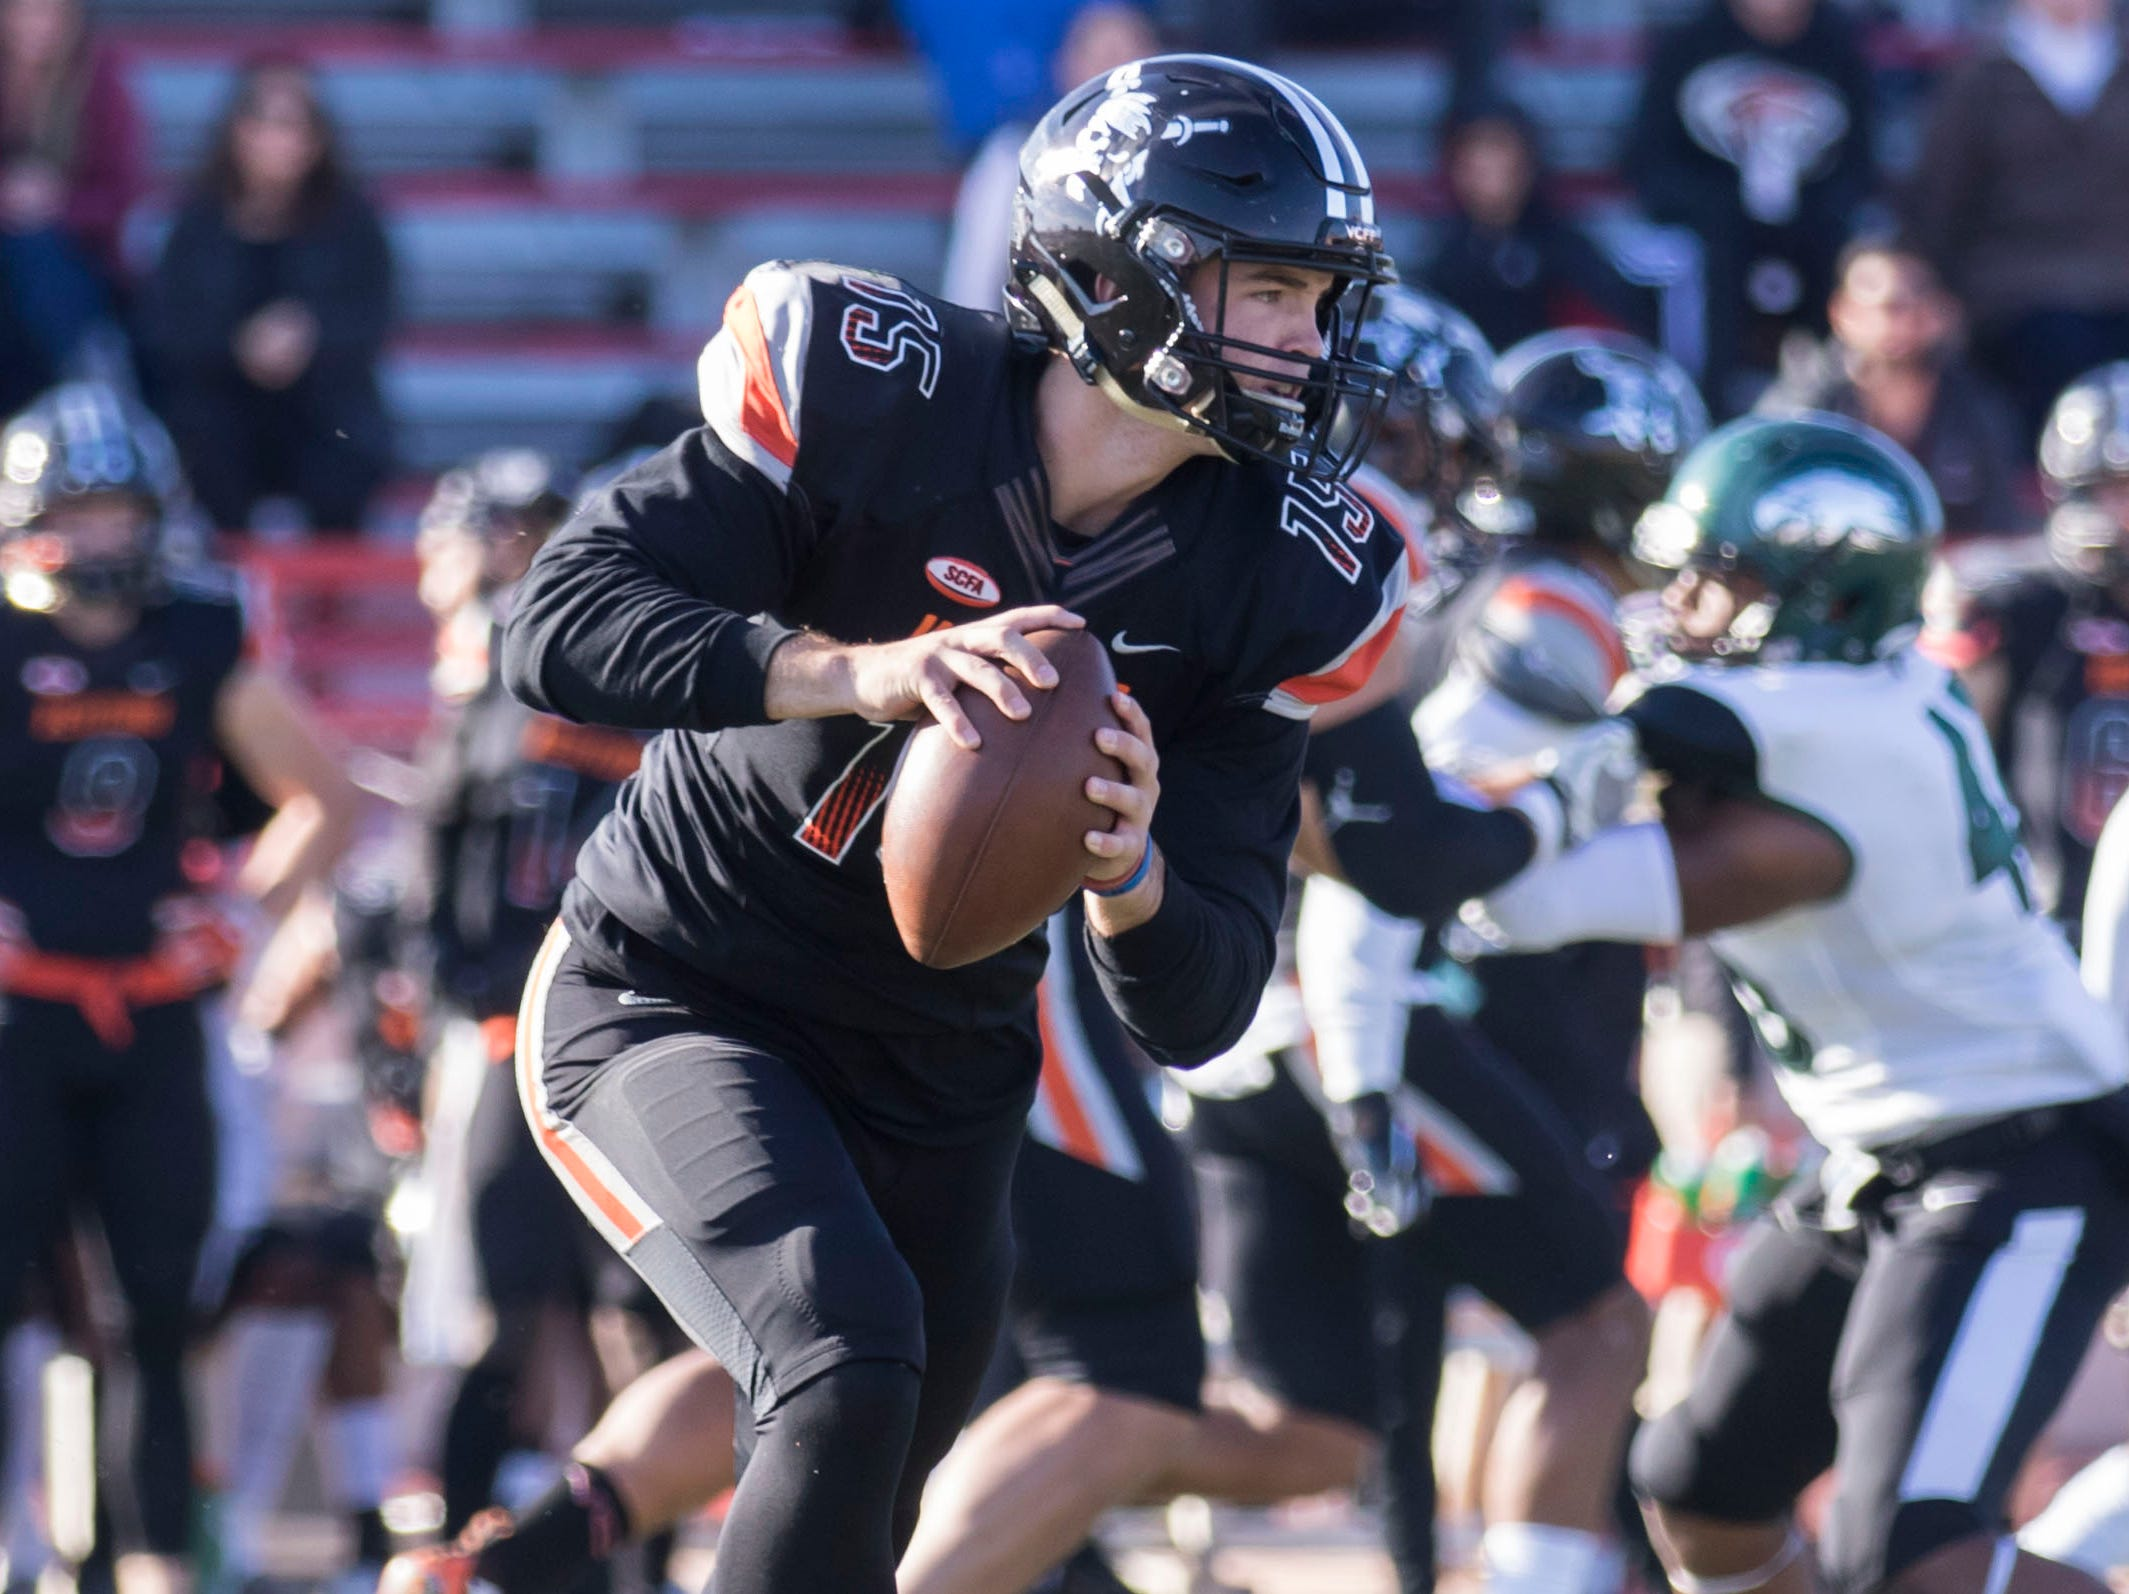 Ventura College quarterback Brock Domann rolls out with the ball during the CCCAA state championship game on Saturday afternoon at Sacramento City's Hughes Stadium. Laney won, 40-35.